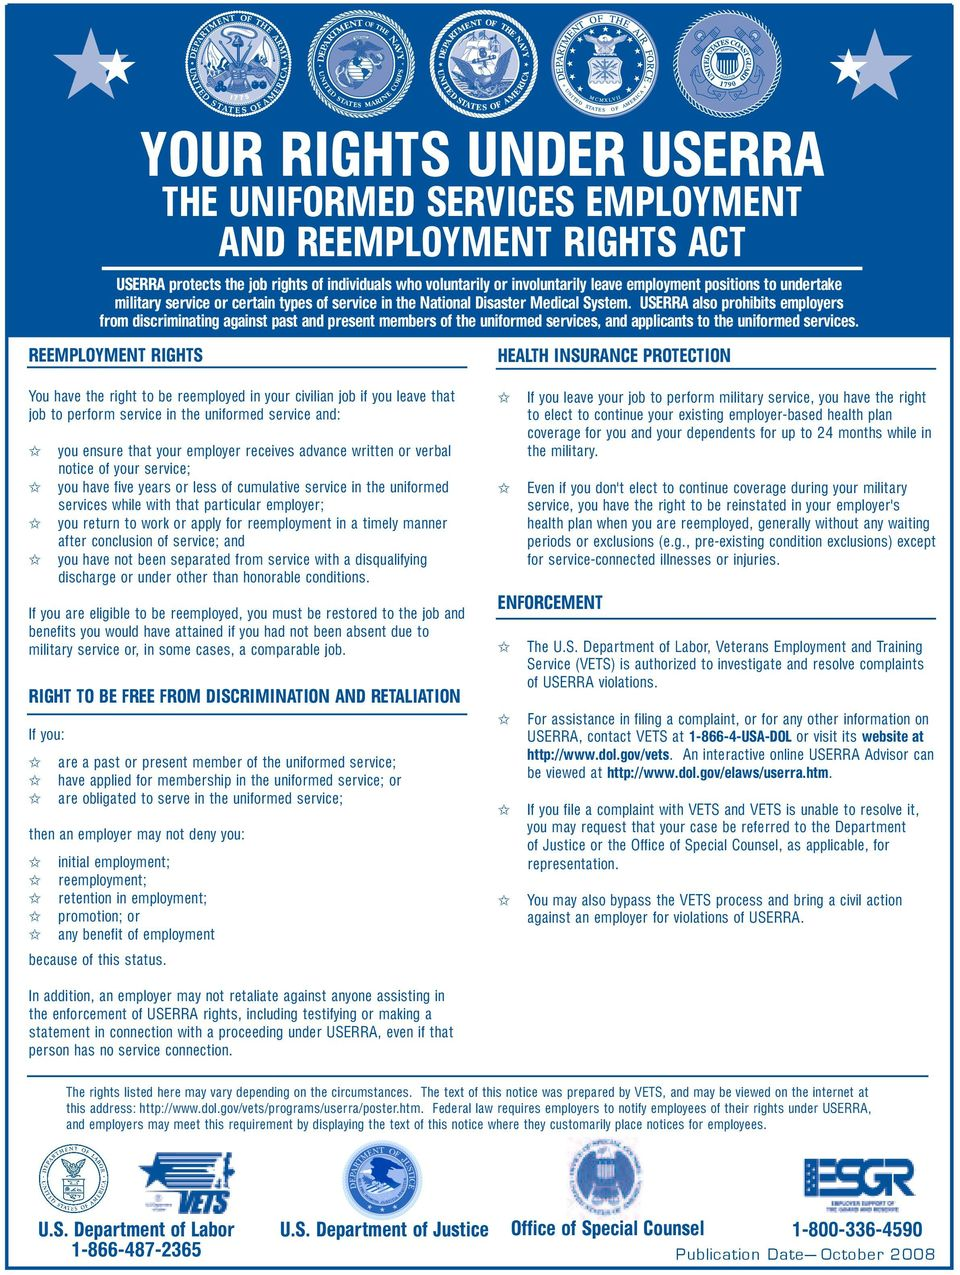 USERRA also prohibits employers from discriminating against past and present members of the uniformed services, and applicants to the uniformed services.